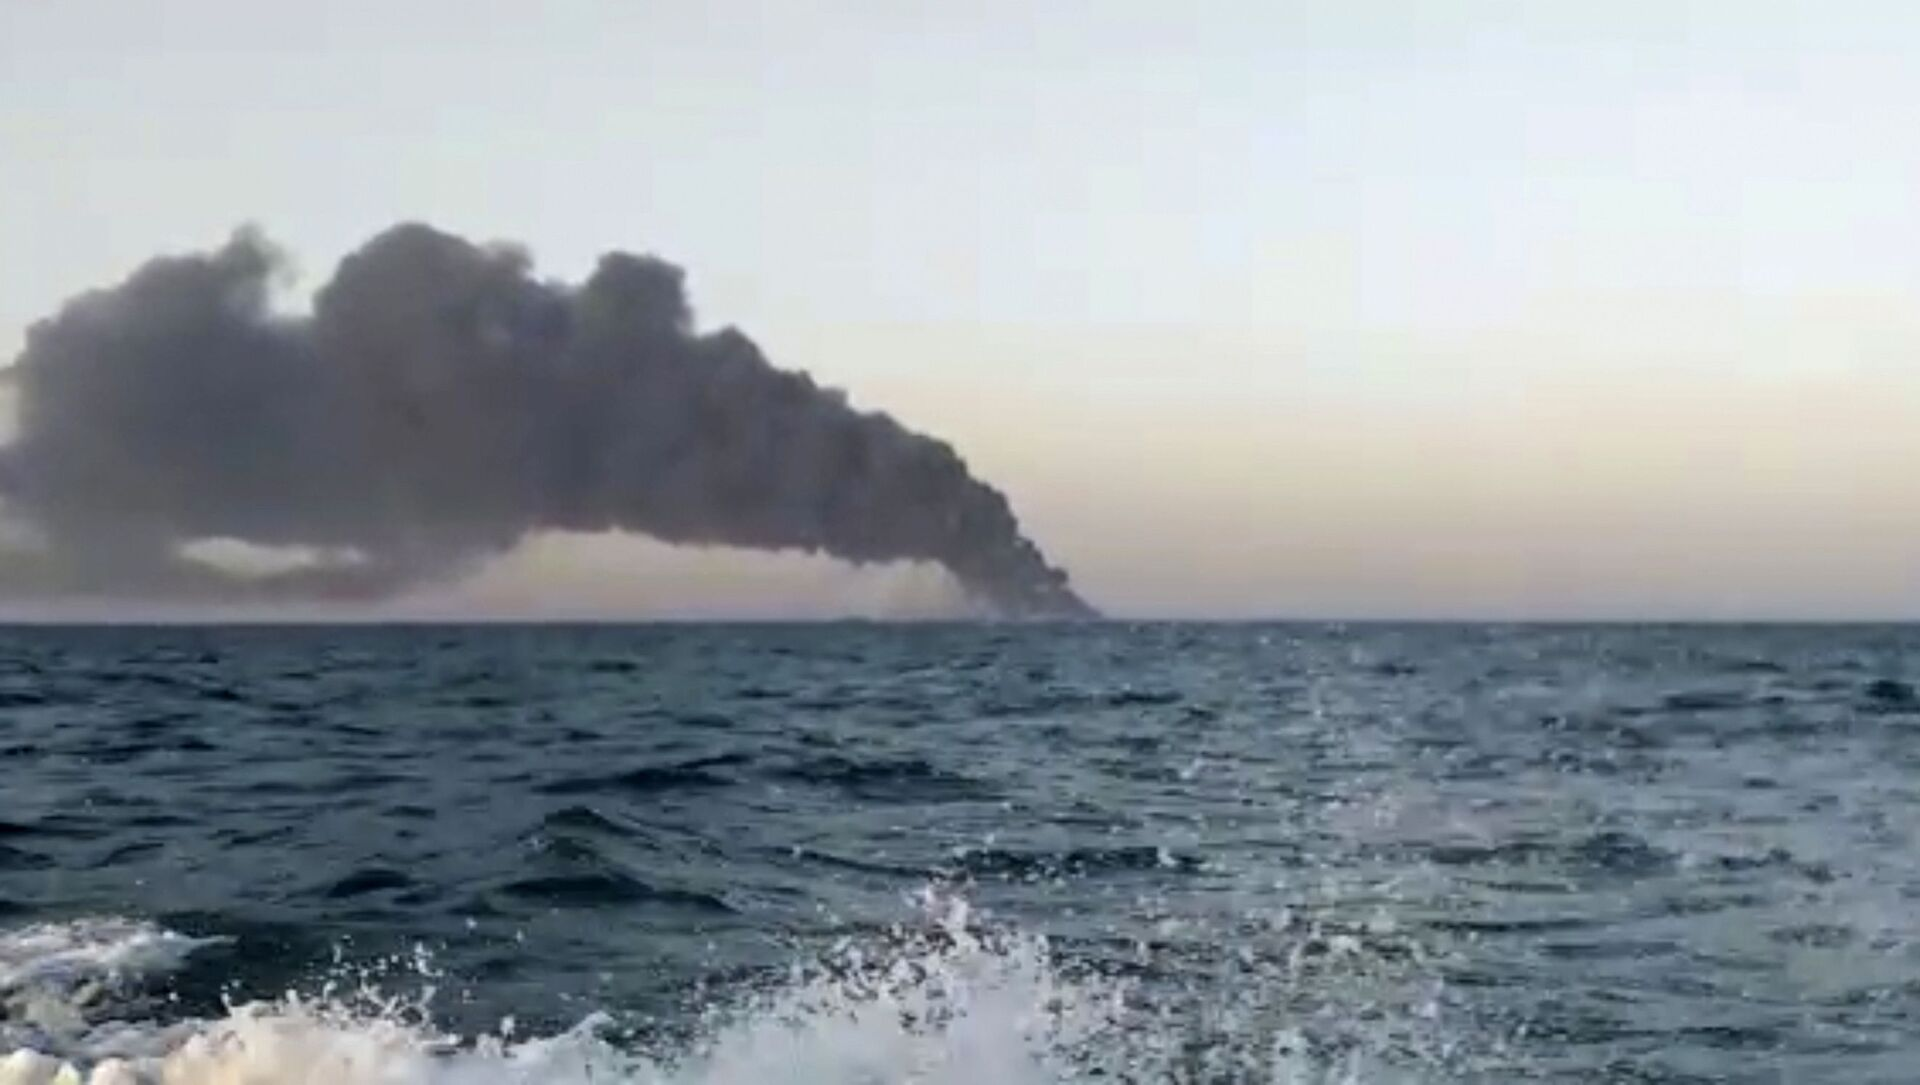 This image made from a video released on Wednesday, June 2, 2021 by Asriran.com, shows smoke rising from Iran's navy support ship Kharg in the Gulf of Oman - Sputnik International, 1920, 02.06.2021